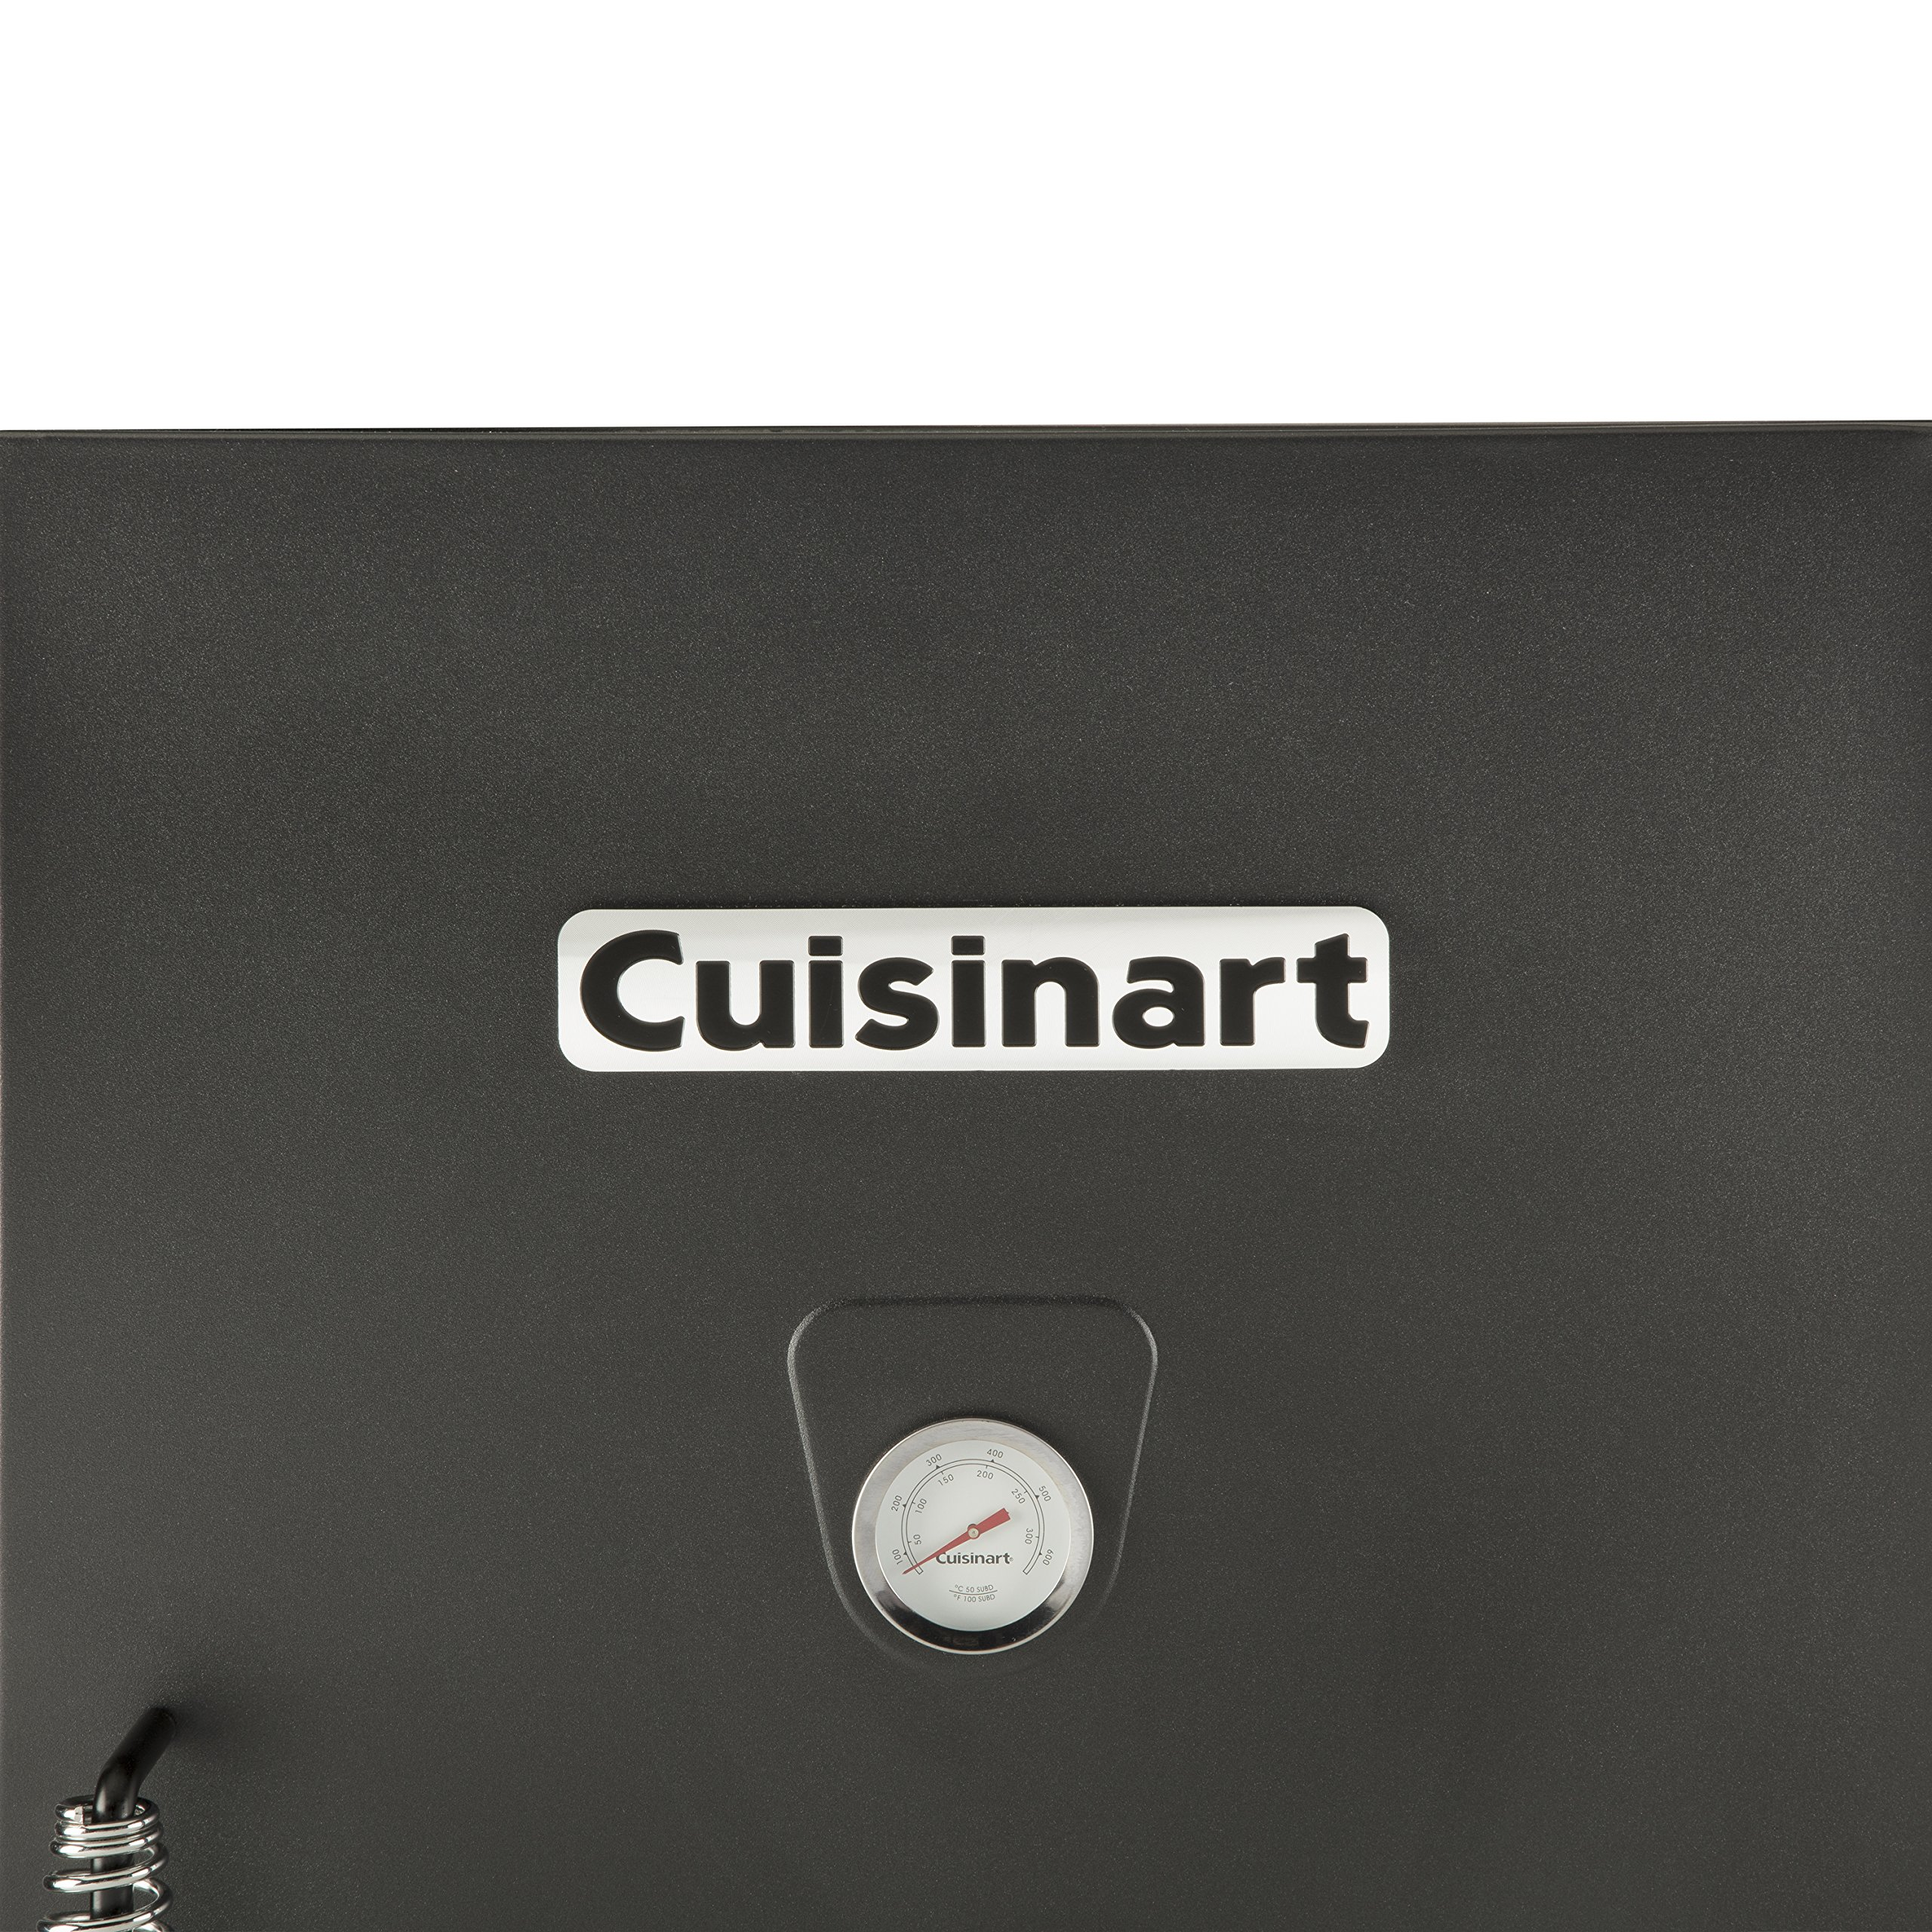 Cuisinart COS-330 Electric Smoker by Cuisinart (Image #5)